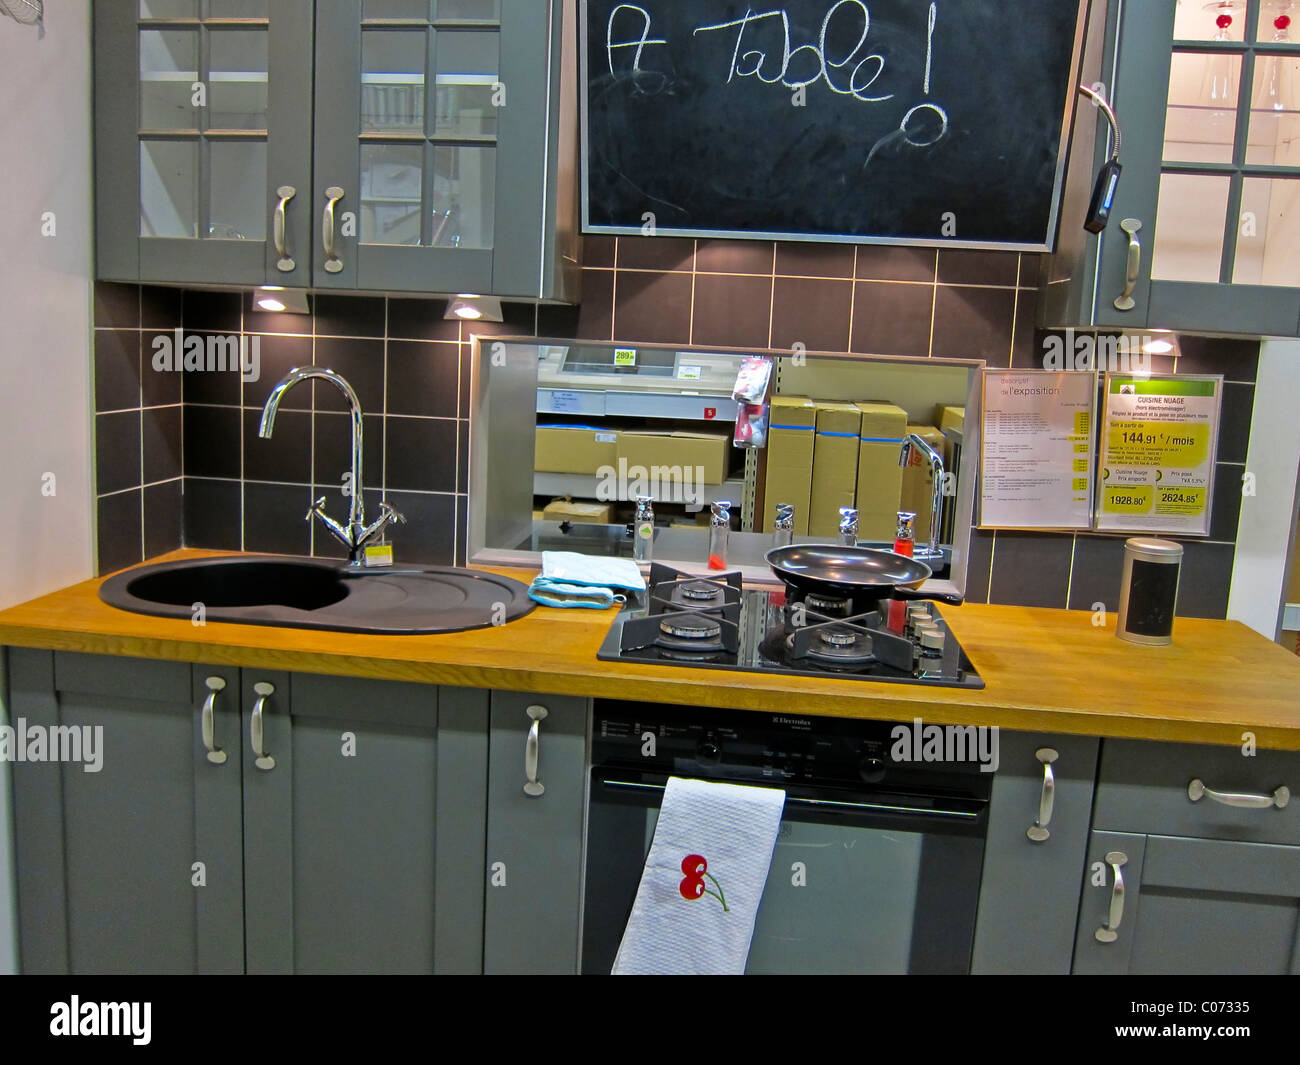 leroy merlin cucina home ps and galaxies on pinterest pensili ...